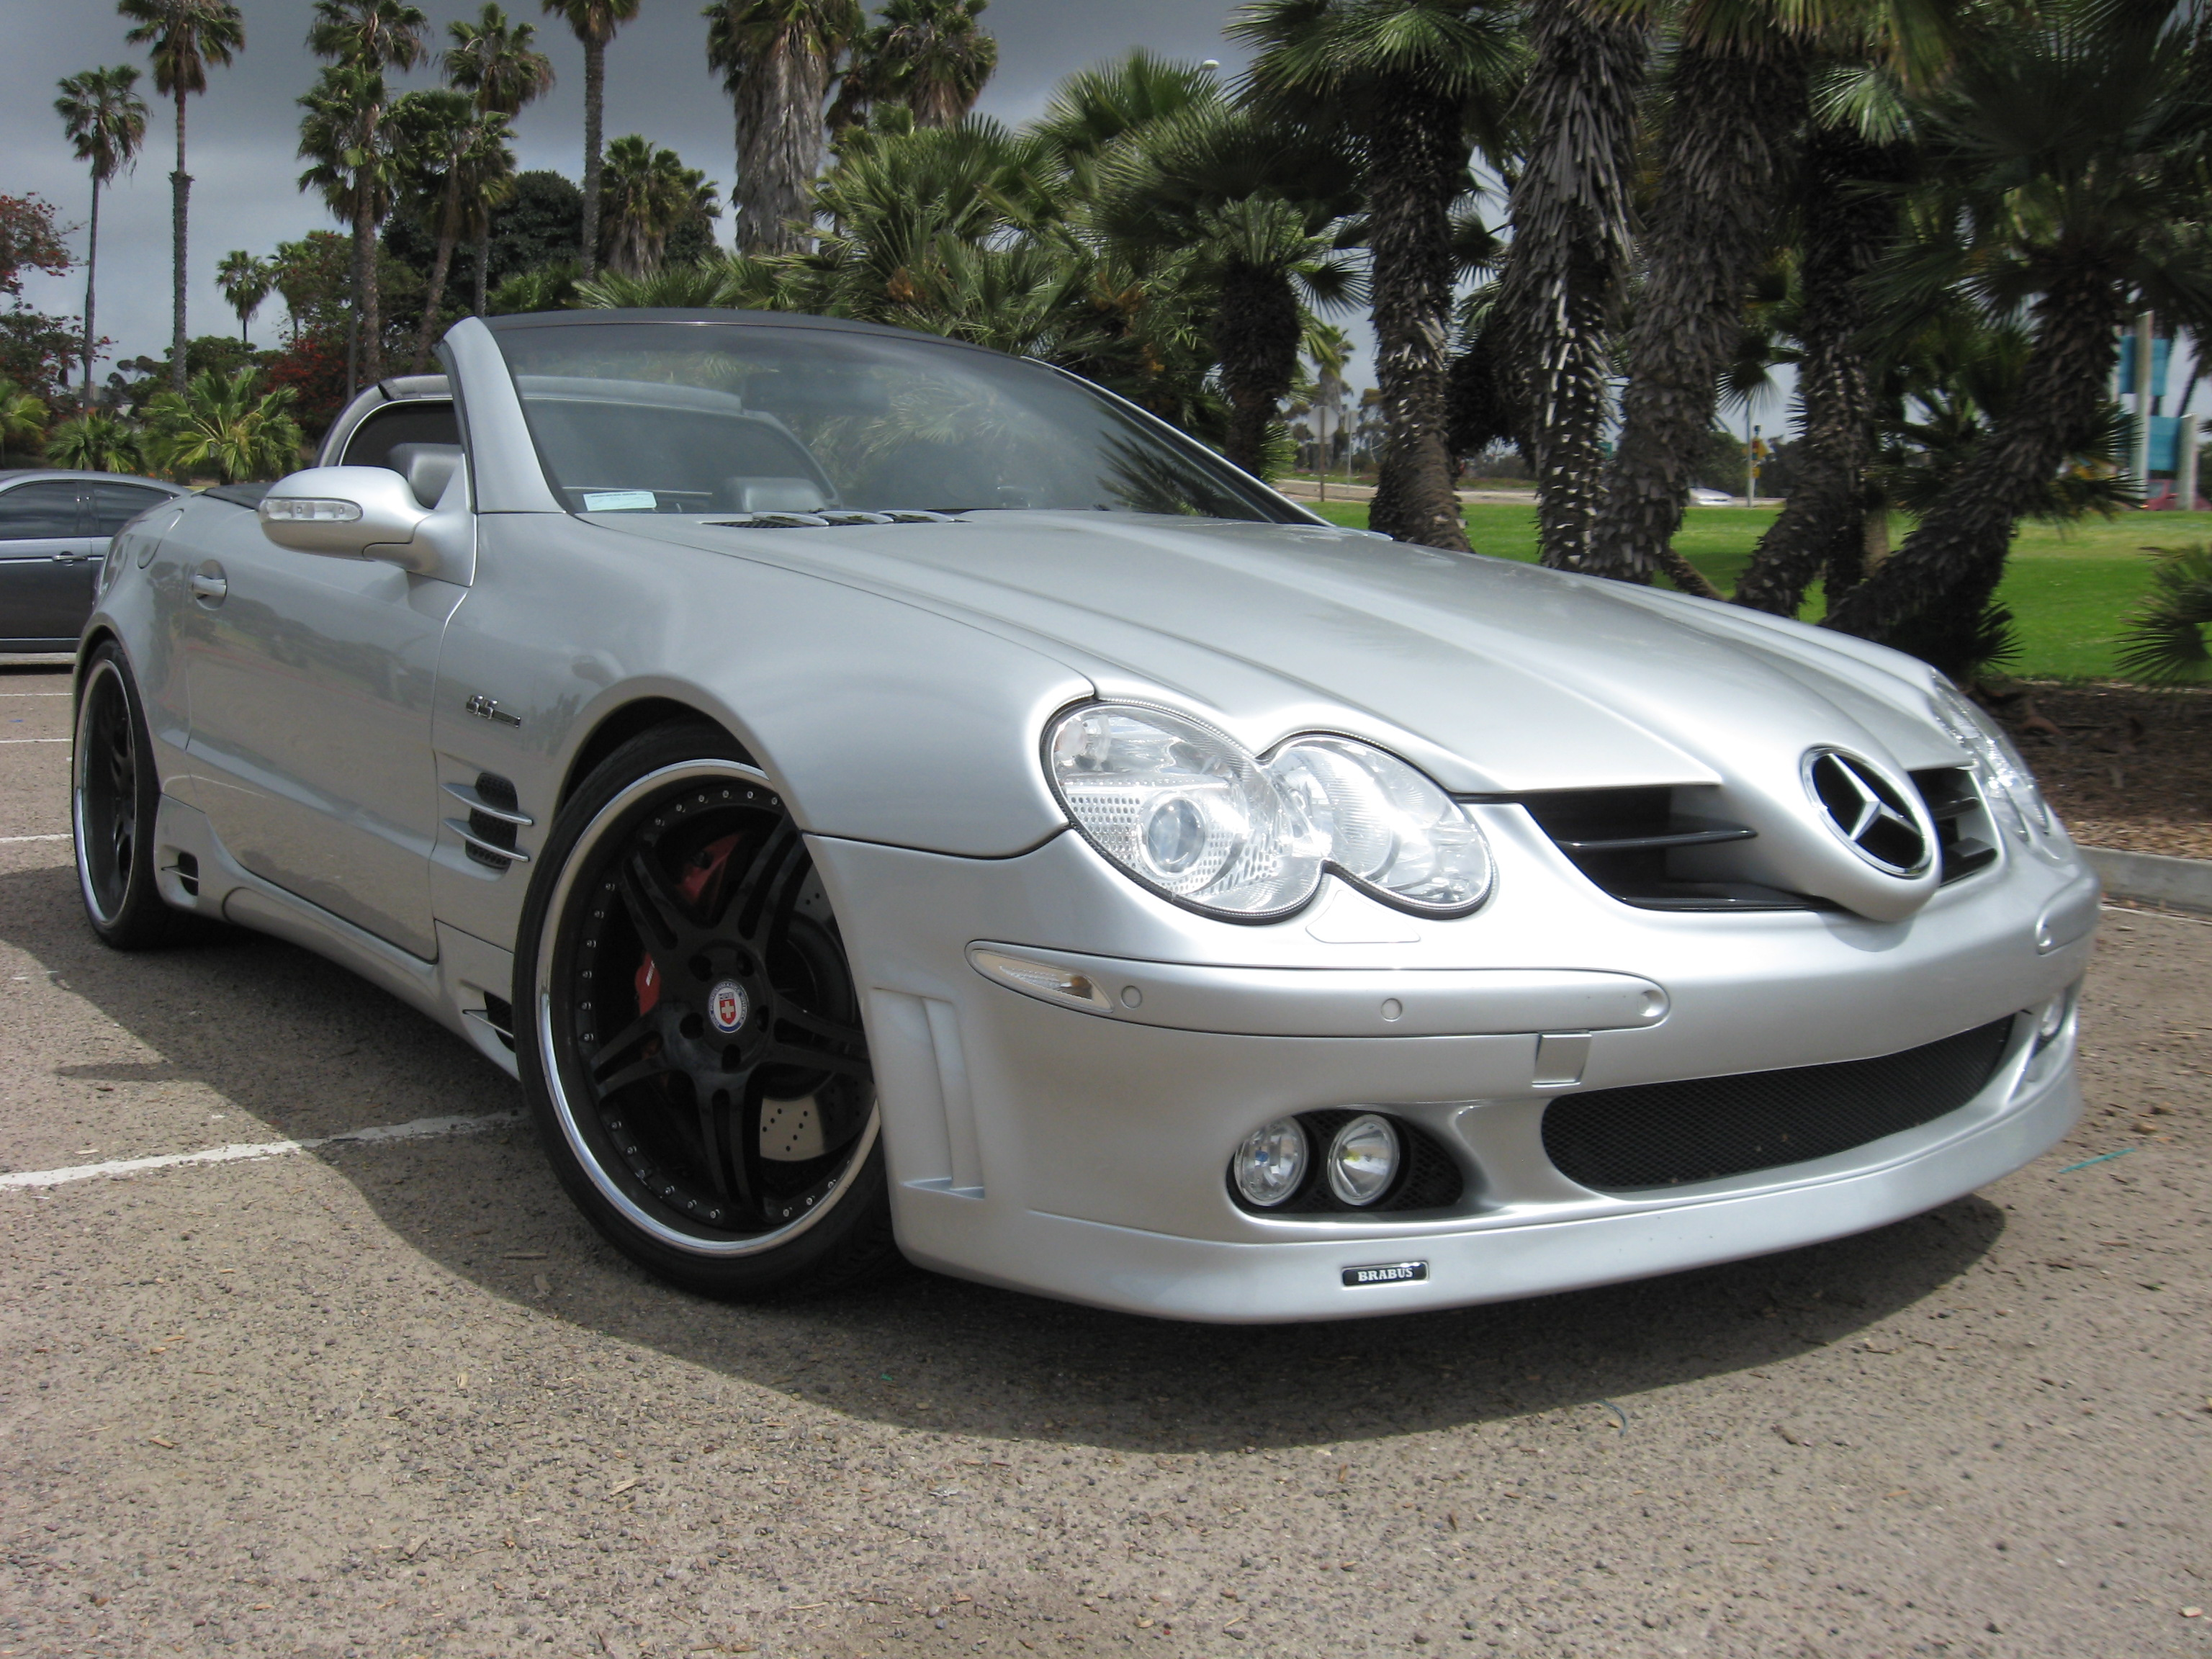 404 not found for Mercedes benz sl55 amg